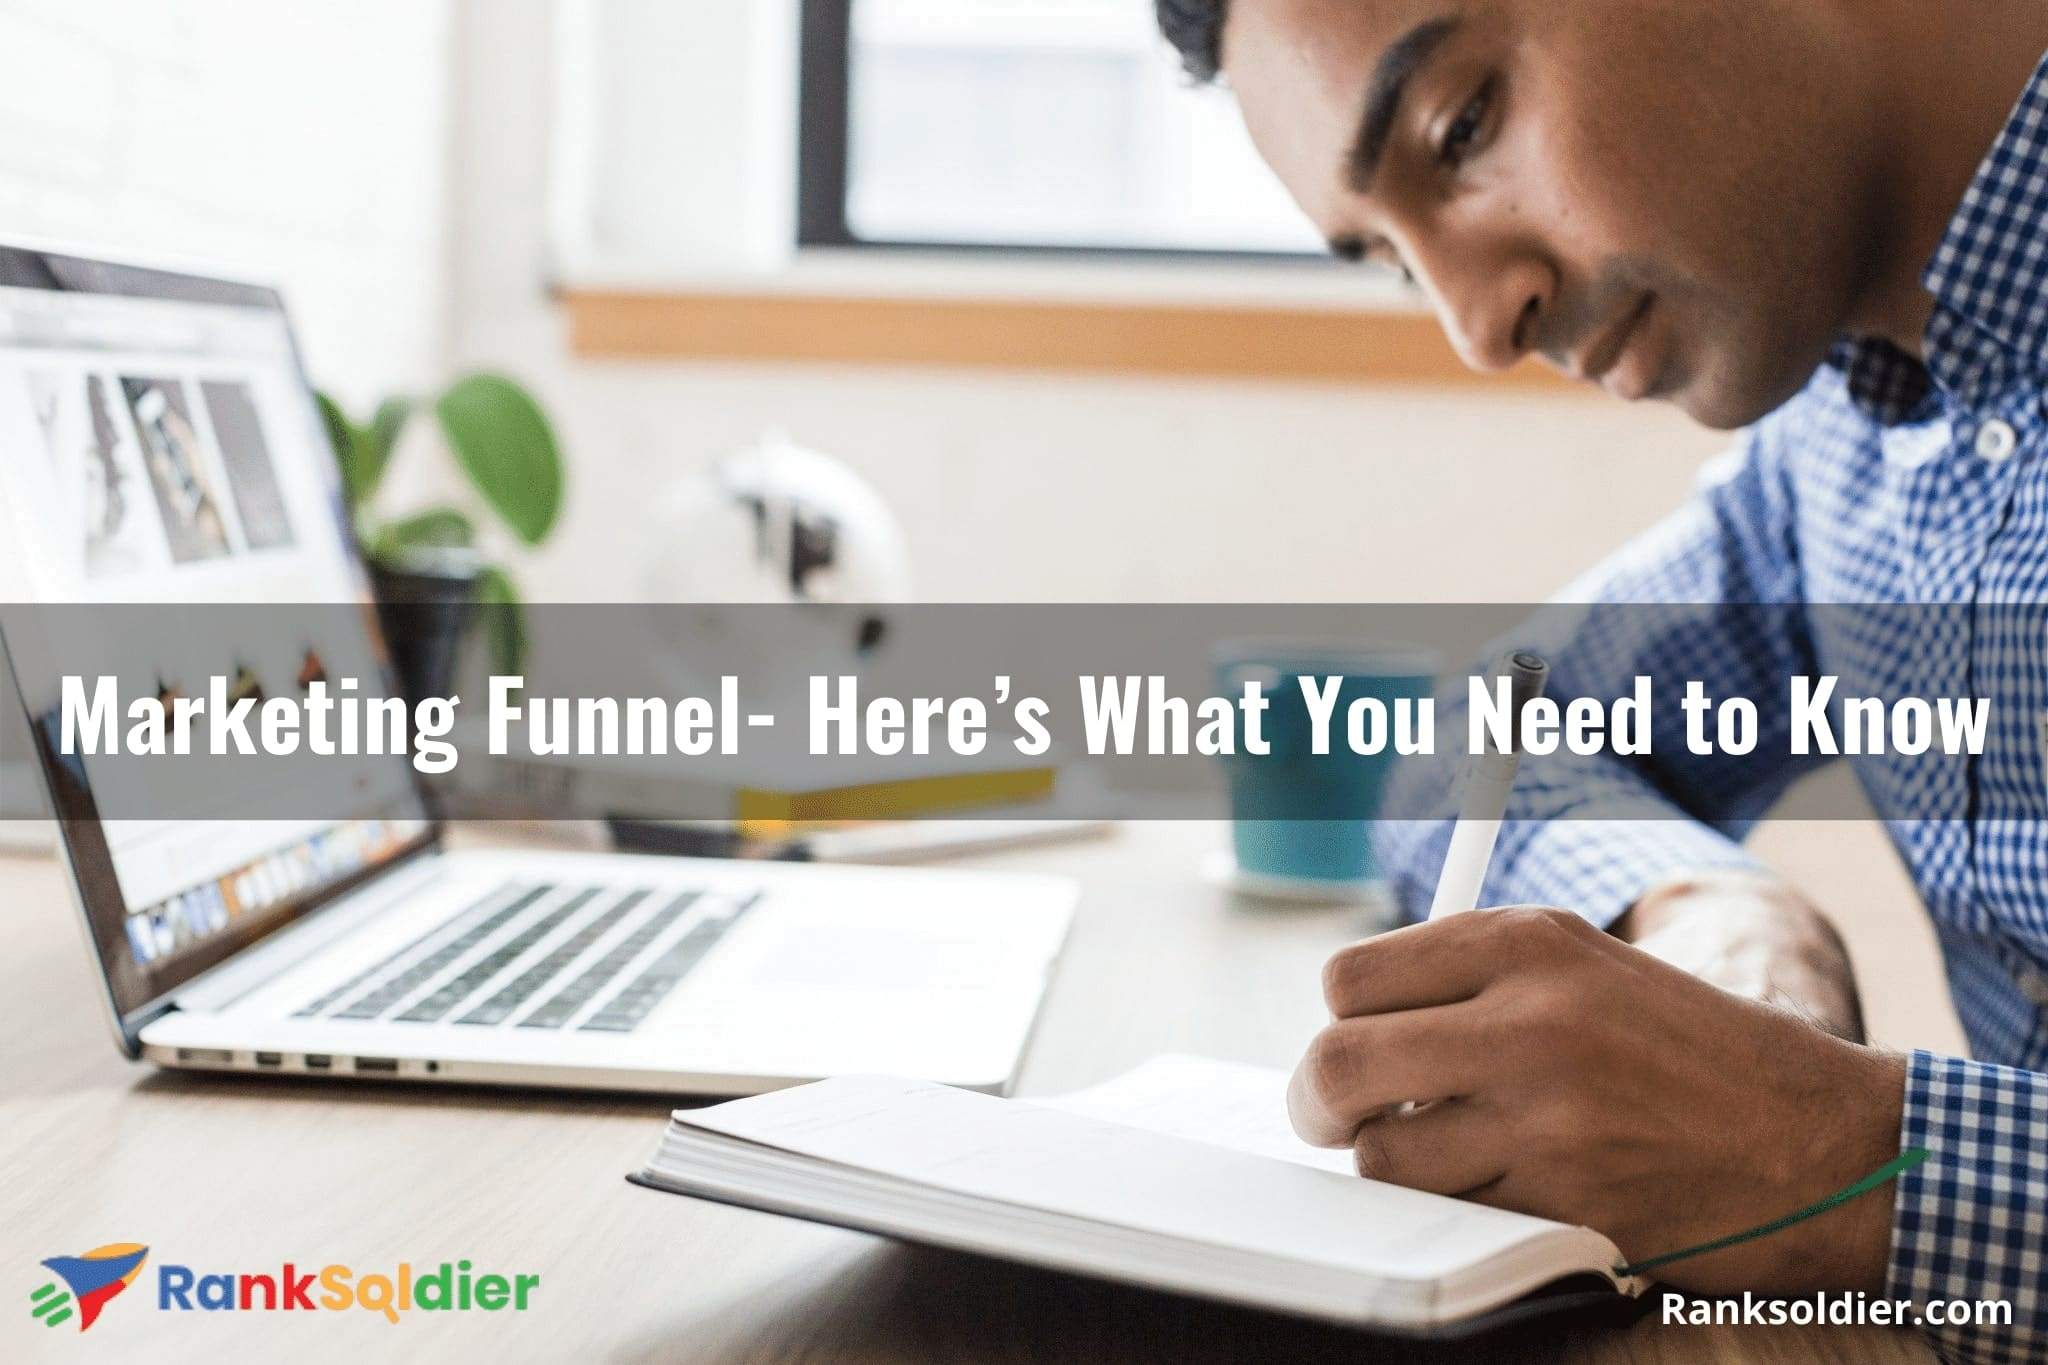 Marketing Funnel- Here's What You Need to Know